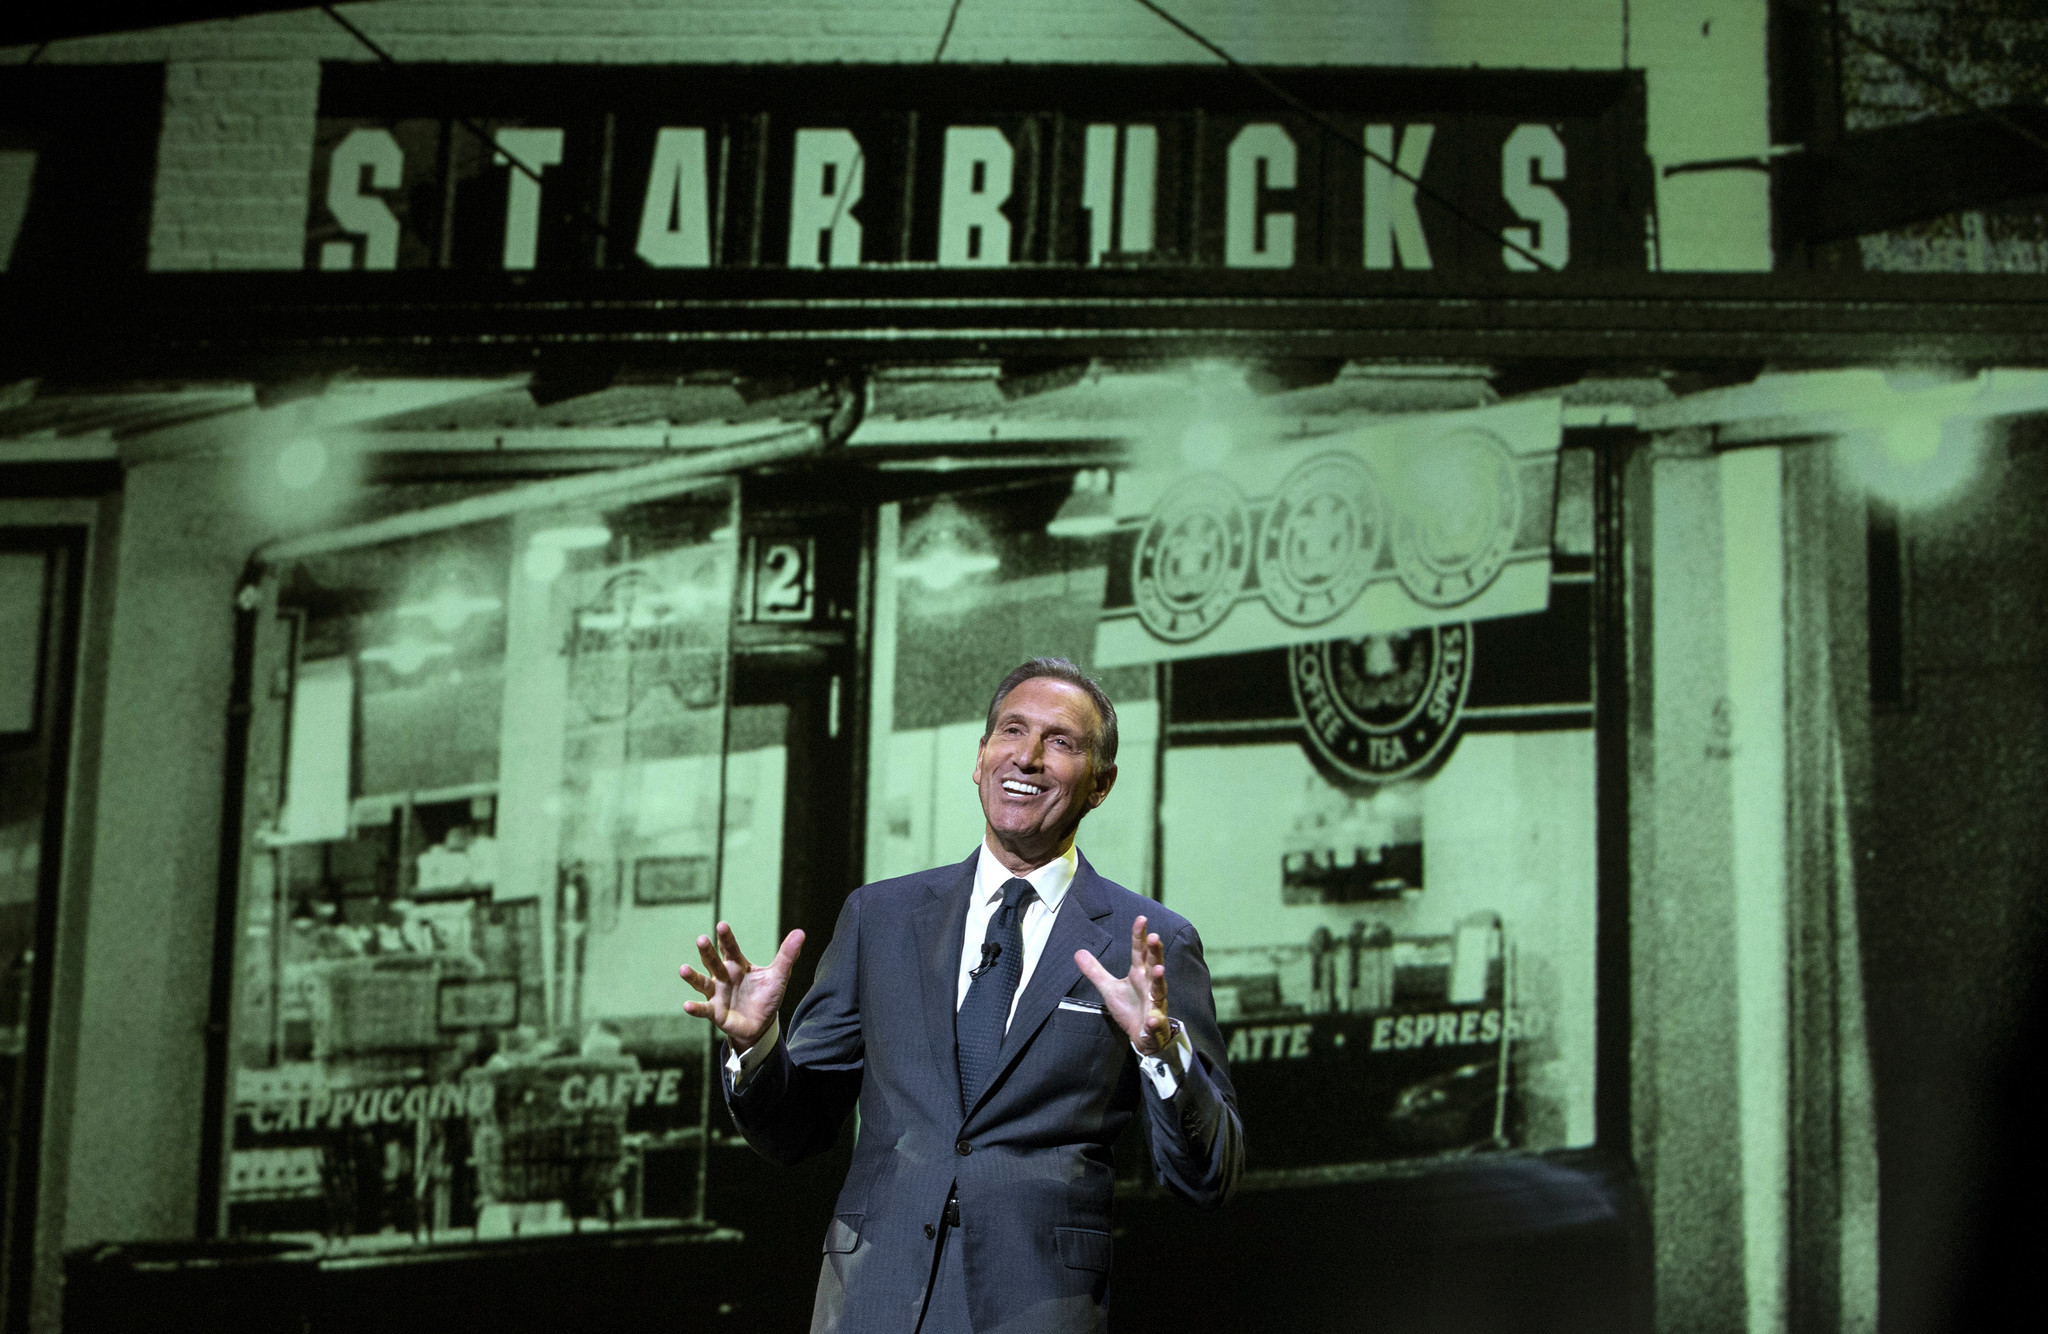 howard schultz and the starbucks company Starbucks' howard schultz is stepping down as executive chairman of the coffee company he helped transform into a global brand, and says public service may be in his future schultz said he is.